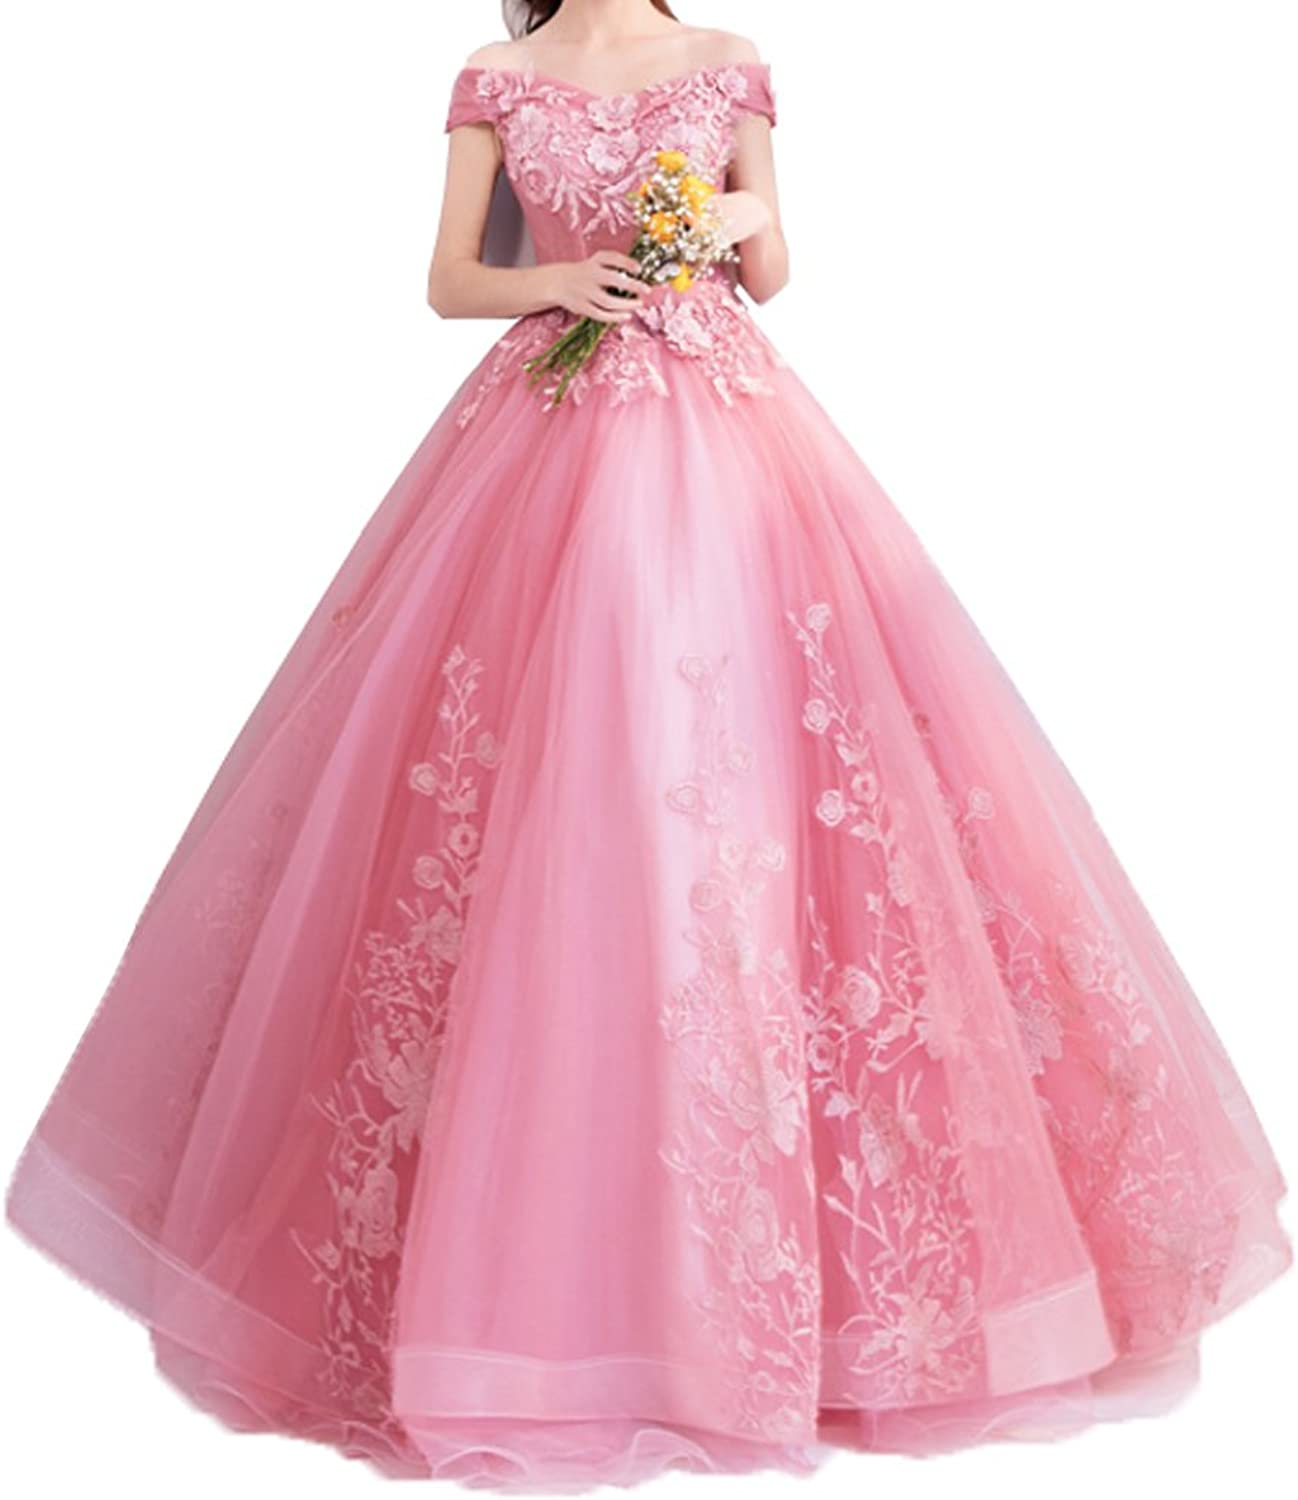 Onlybridal Women's Quinceanera Dress Tulle Appliques Beaded Flower Off Shoulder Ball Gown Lace up Corset Sweet 16 Dress